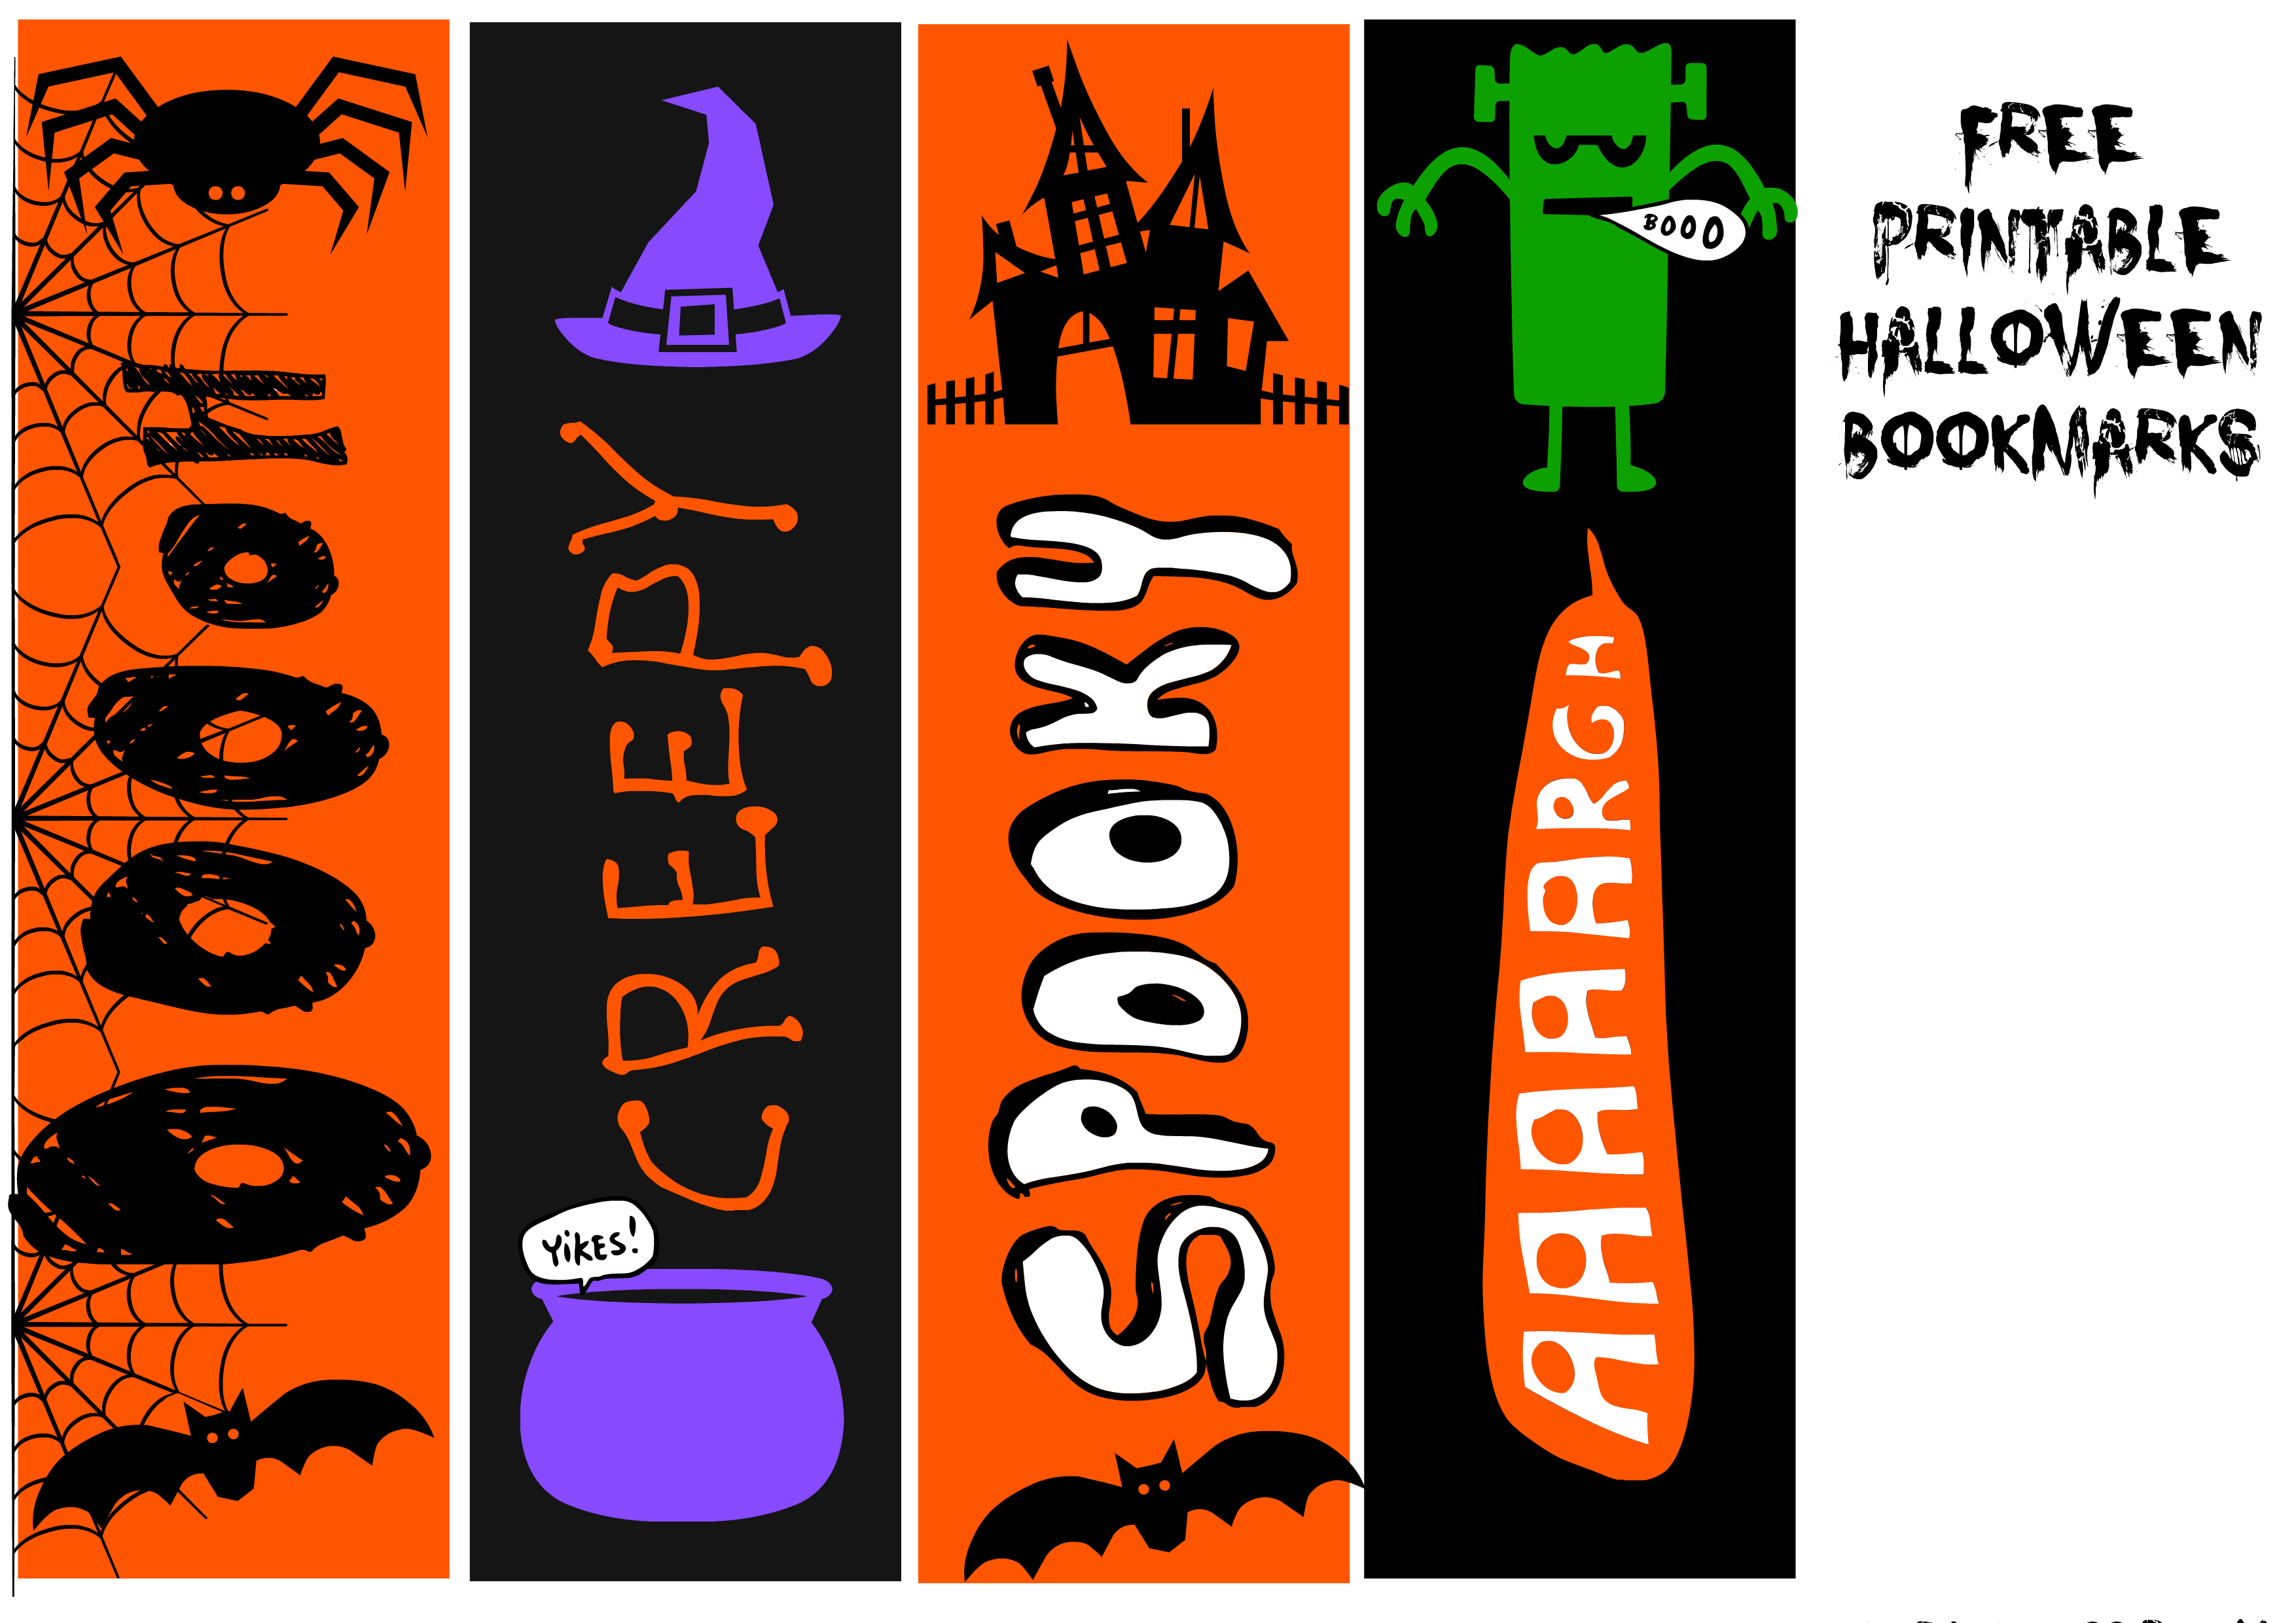 Printable Halloween Bookmarks and Other Treats for Trick or ...